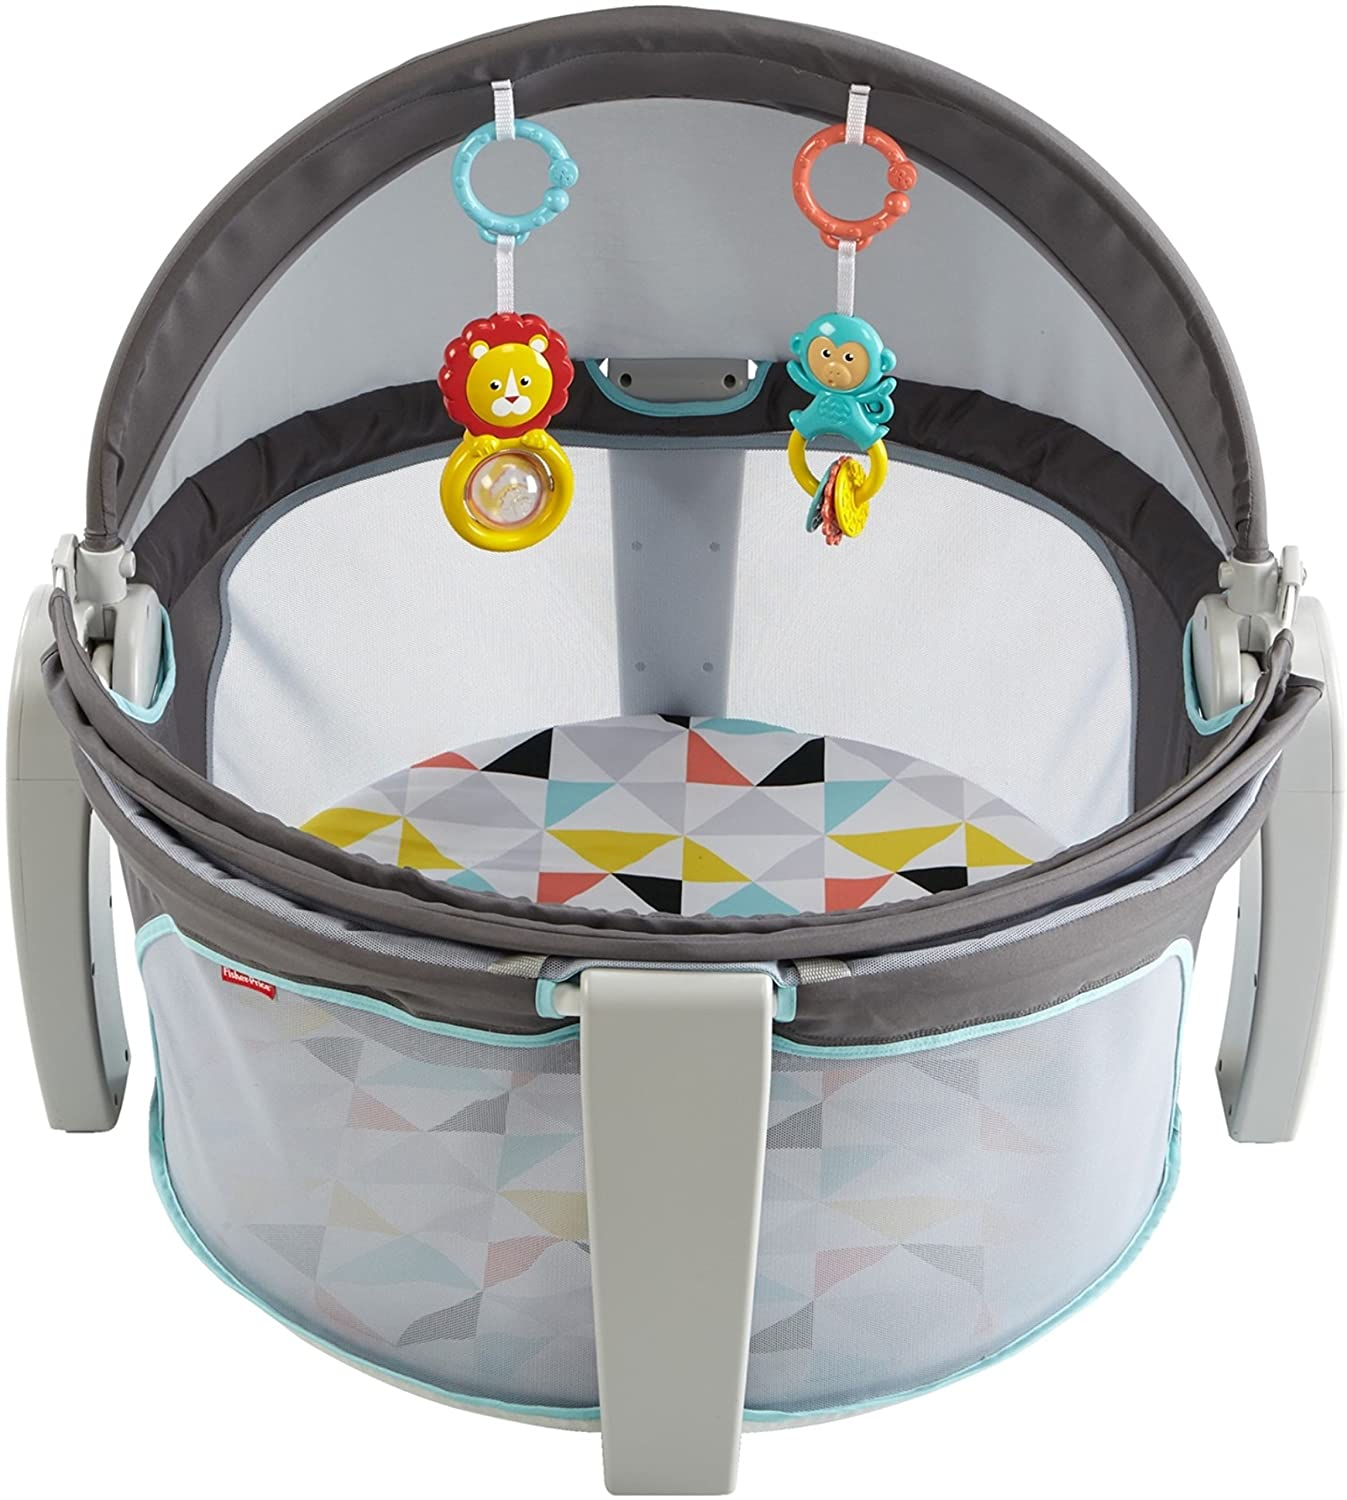 FISHERPRICE HEXAGONS ONTHEGO BABY DOME IN GREY